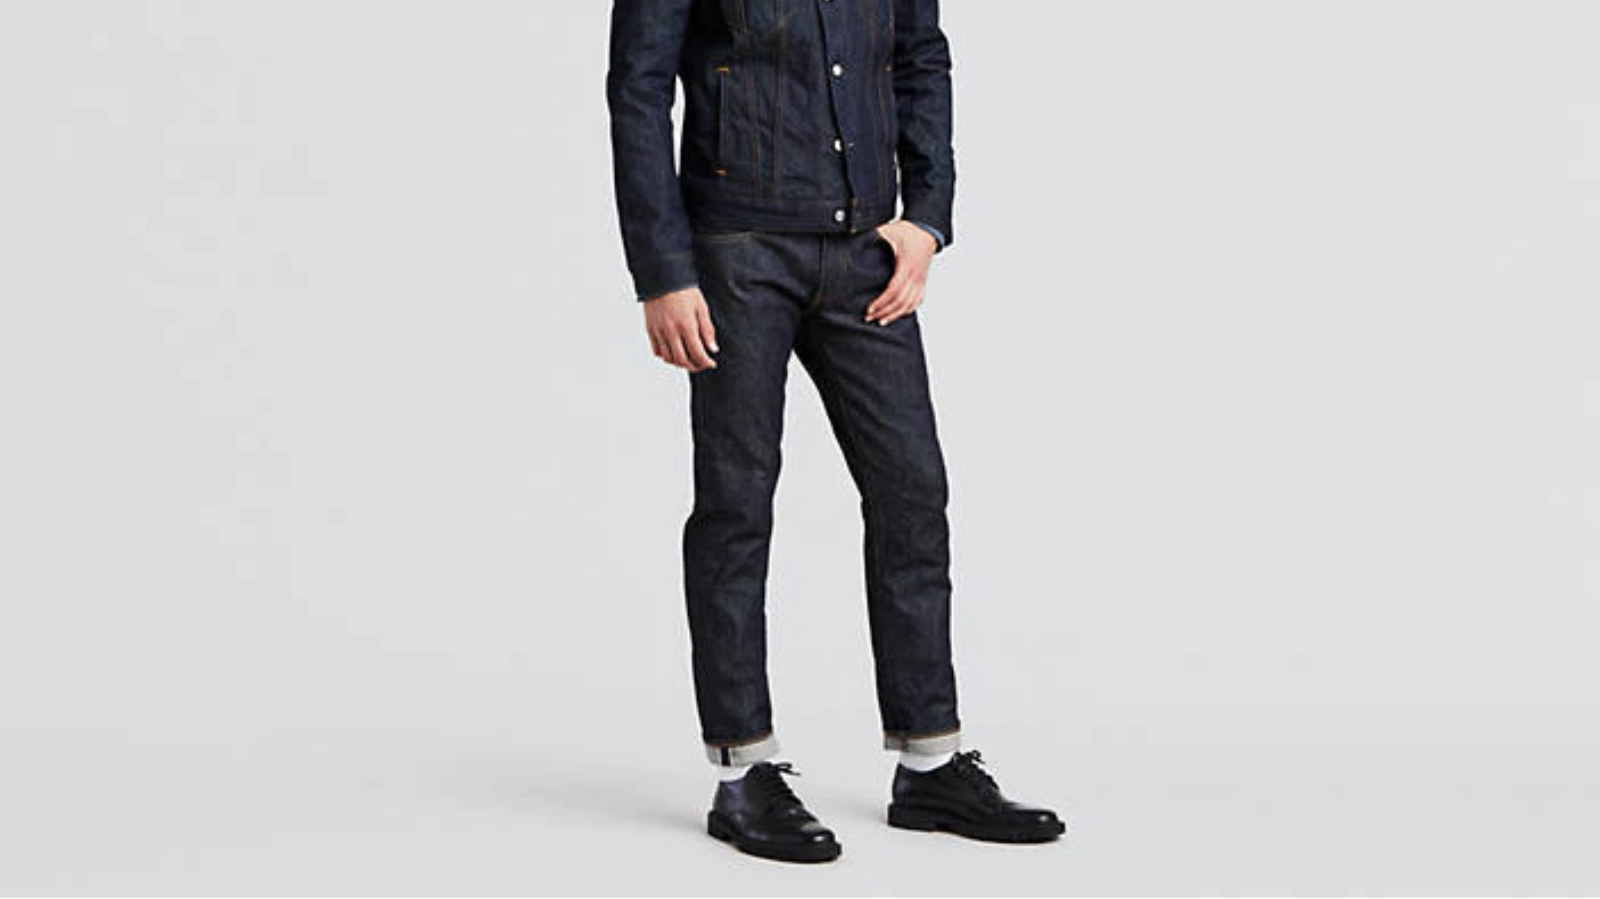 Levi 511 Slim Fit Stretch Men's Fall Fashion Essentials